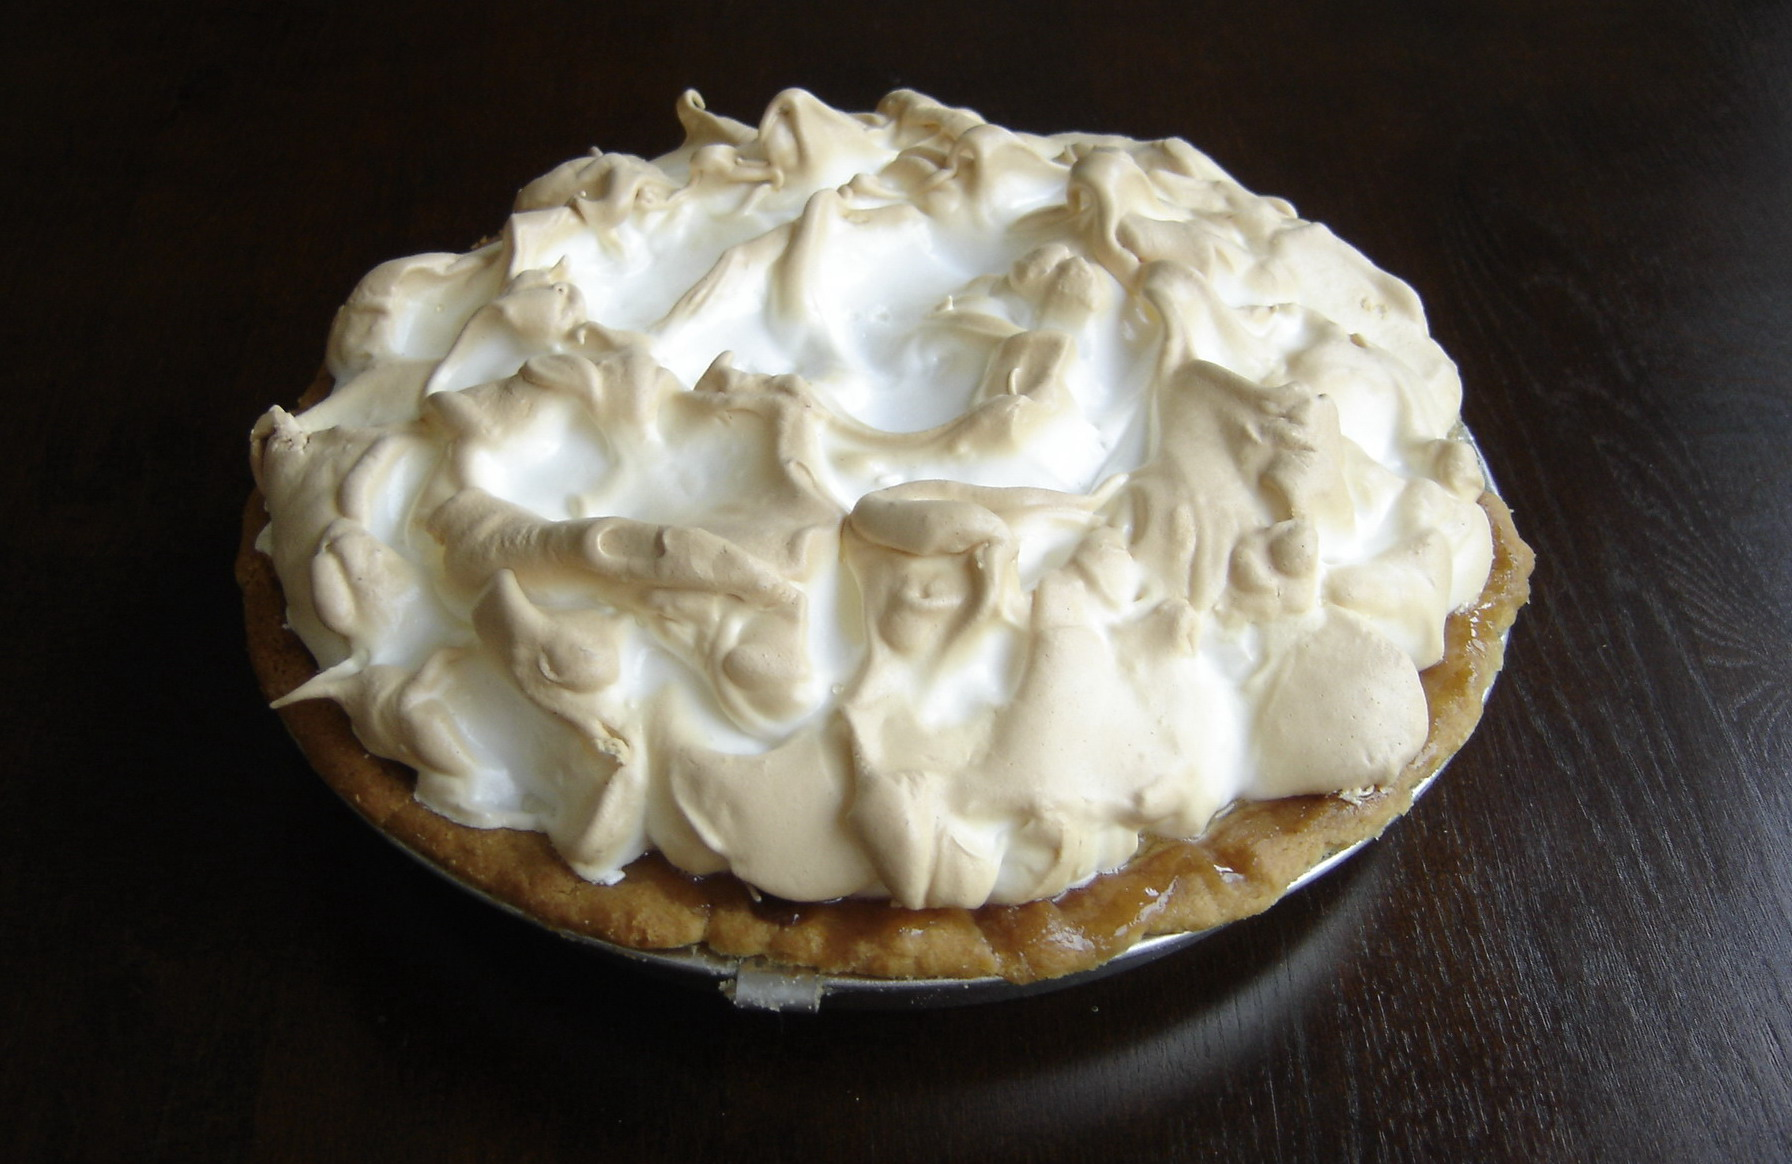 http://upload.wikimedia.org/wikipedia/commons/6/6d/Key_limepie.jpg